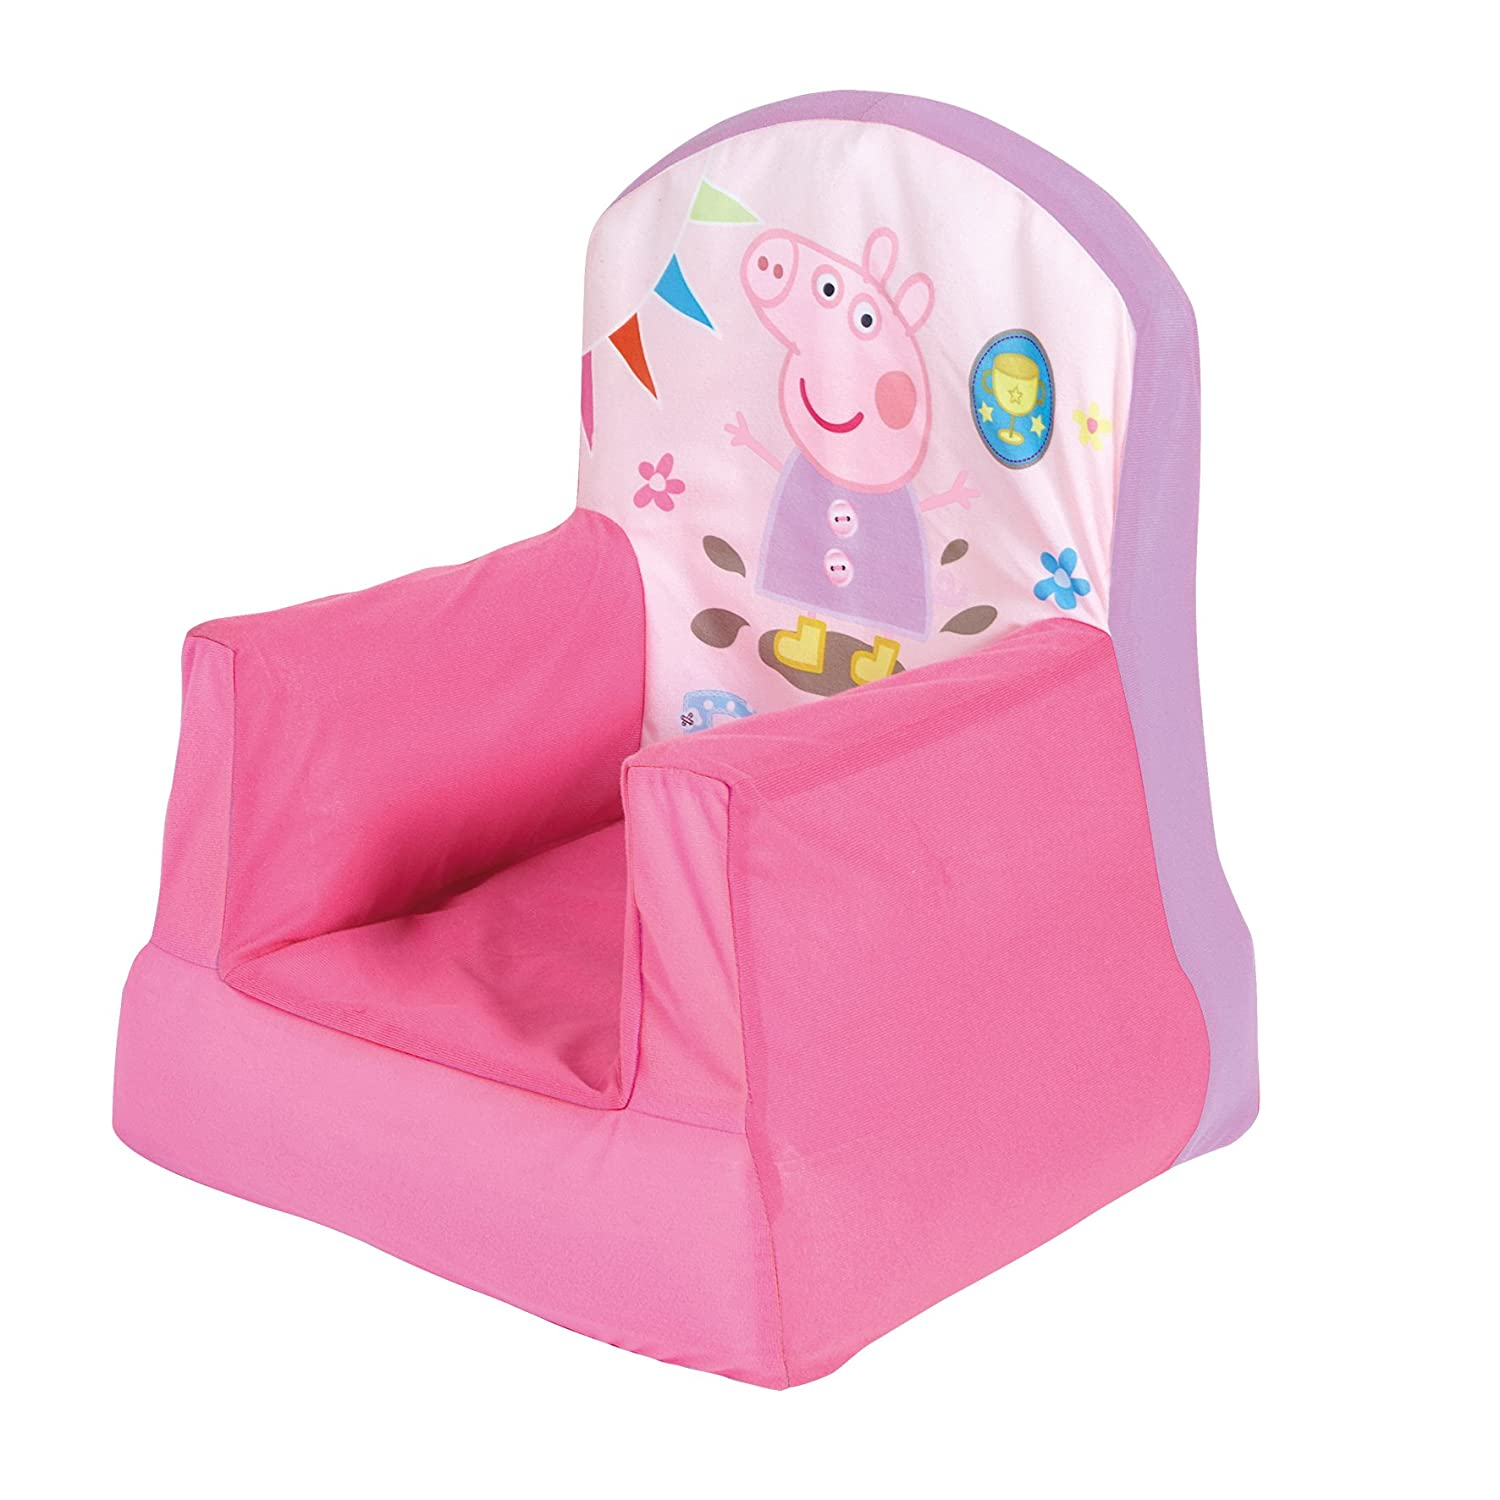 Peppa Pig Inflatable Chair For Kids Amazon Kitchen & Home